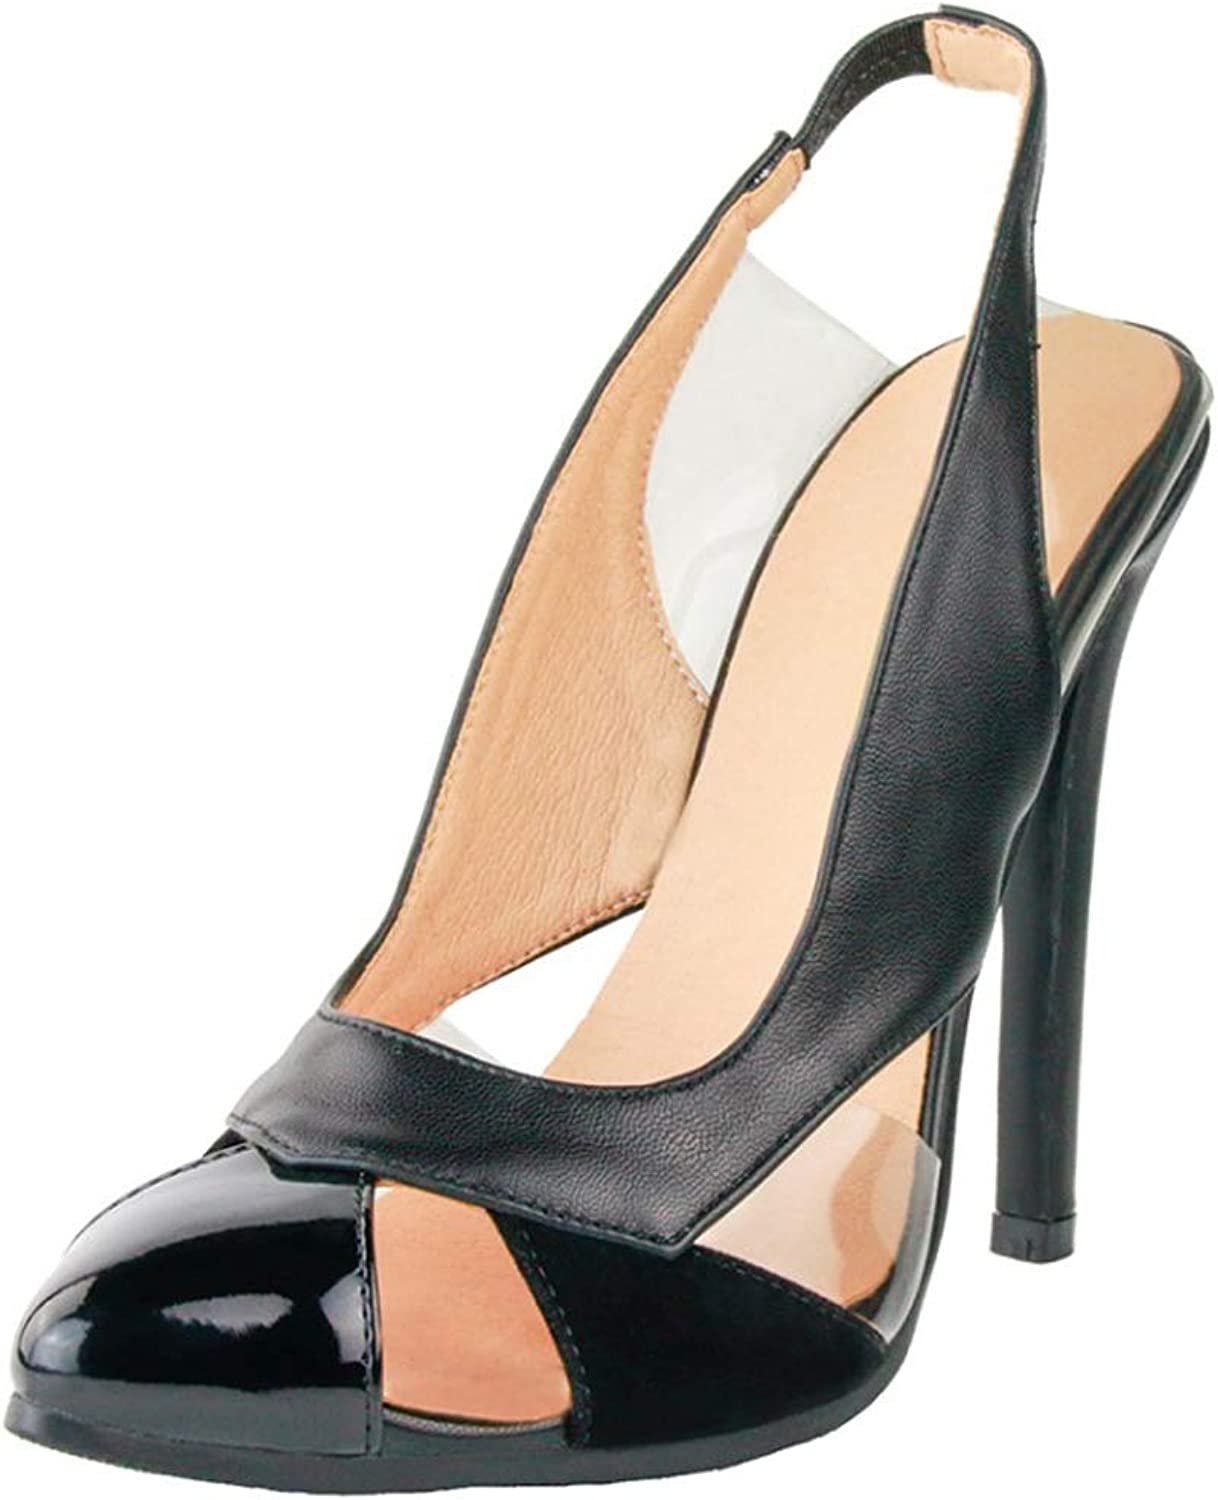 CASSOCK Women's Casual shoes Slingback Party Office High Heel Dress Pumps shoes